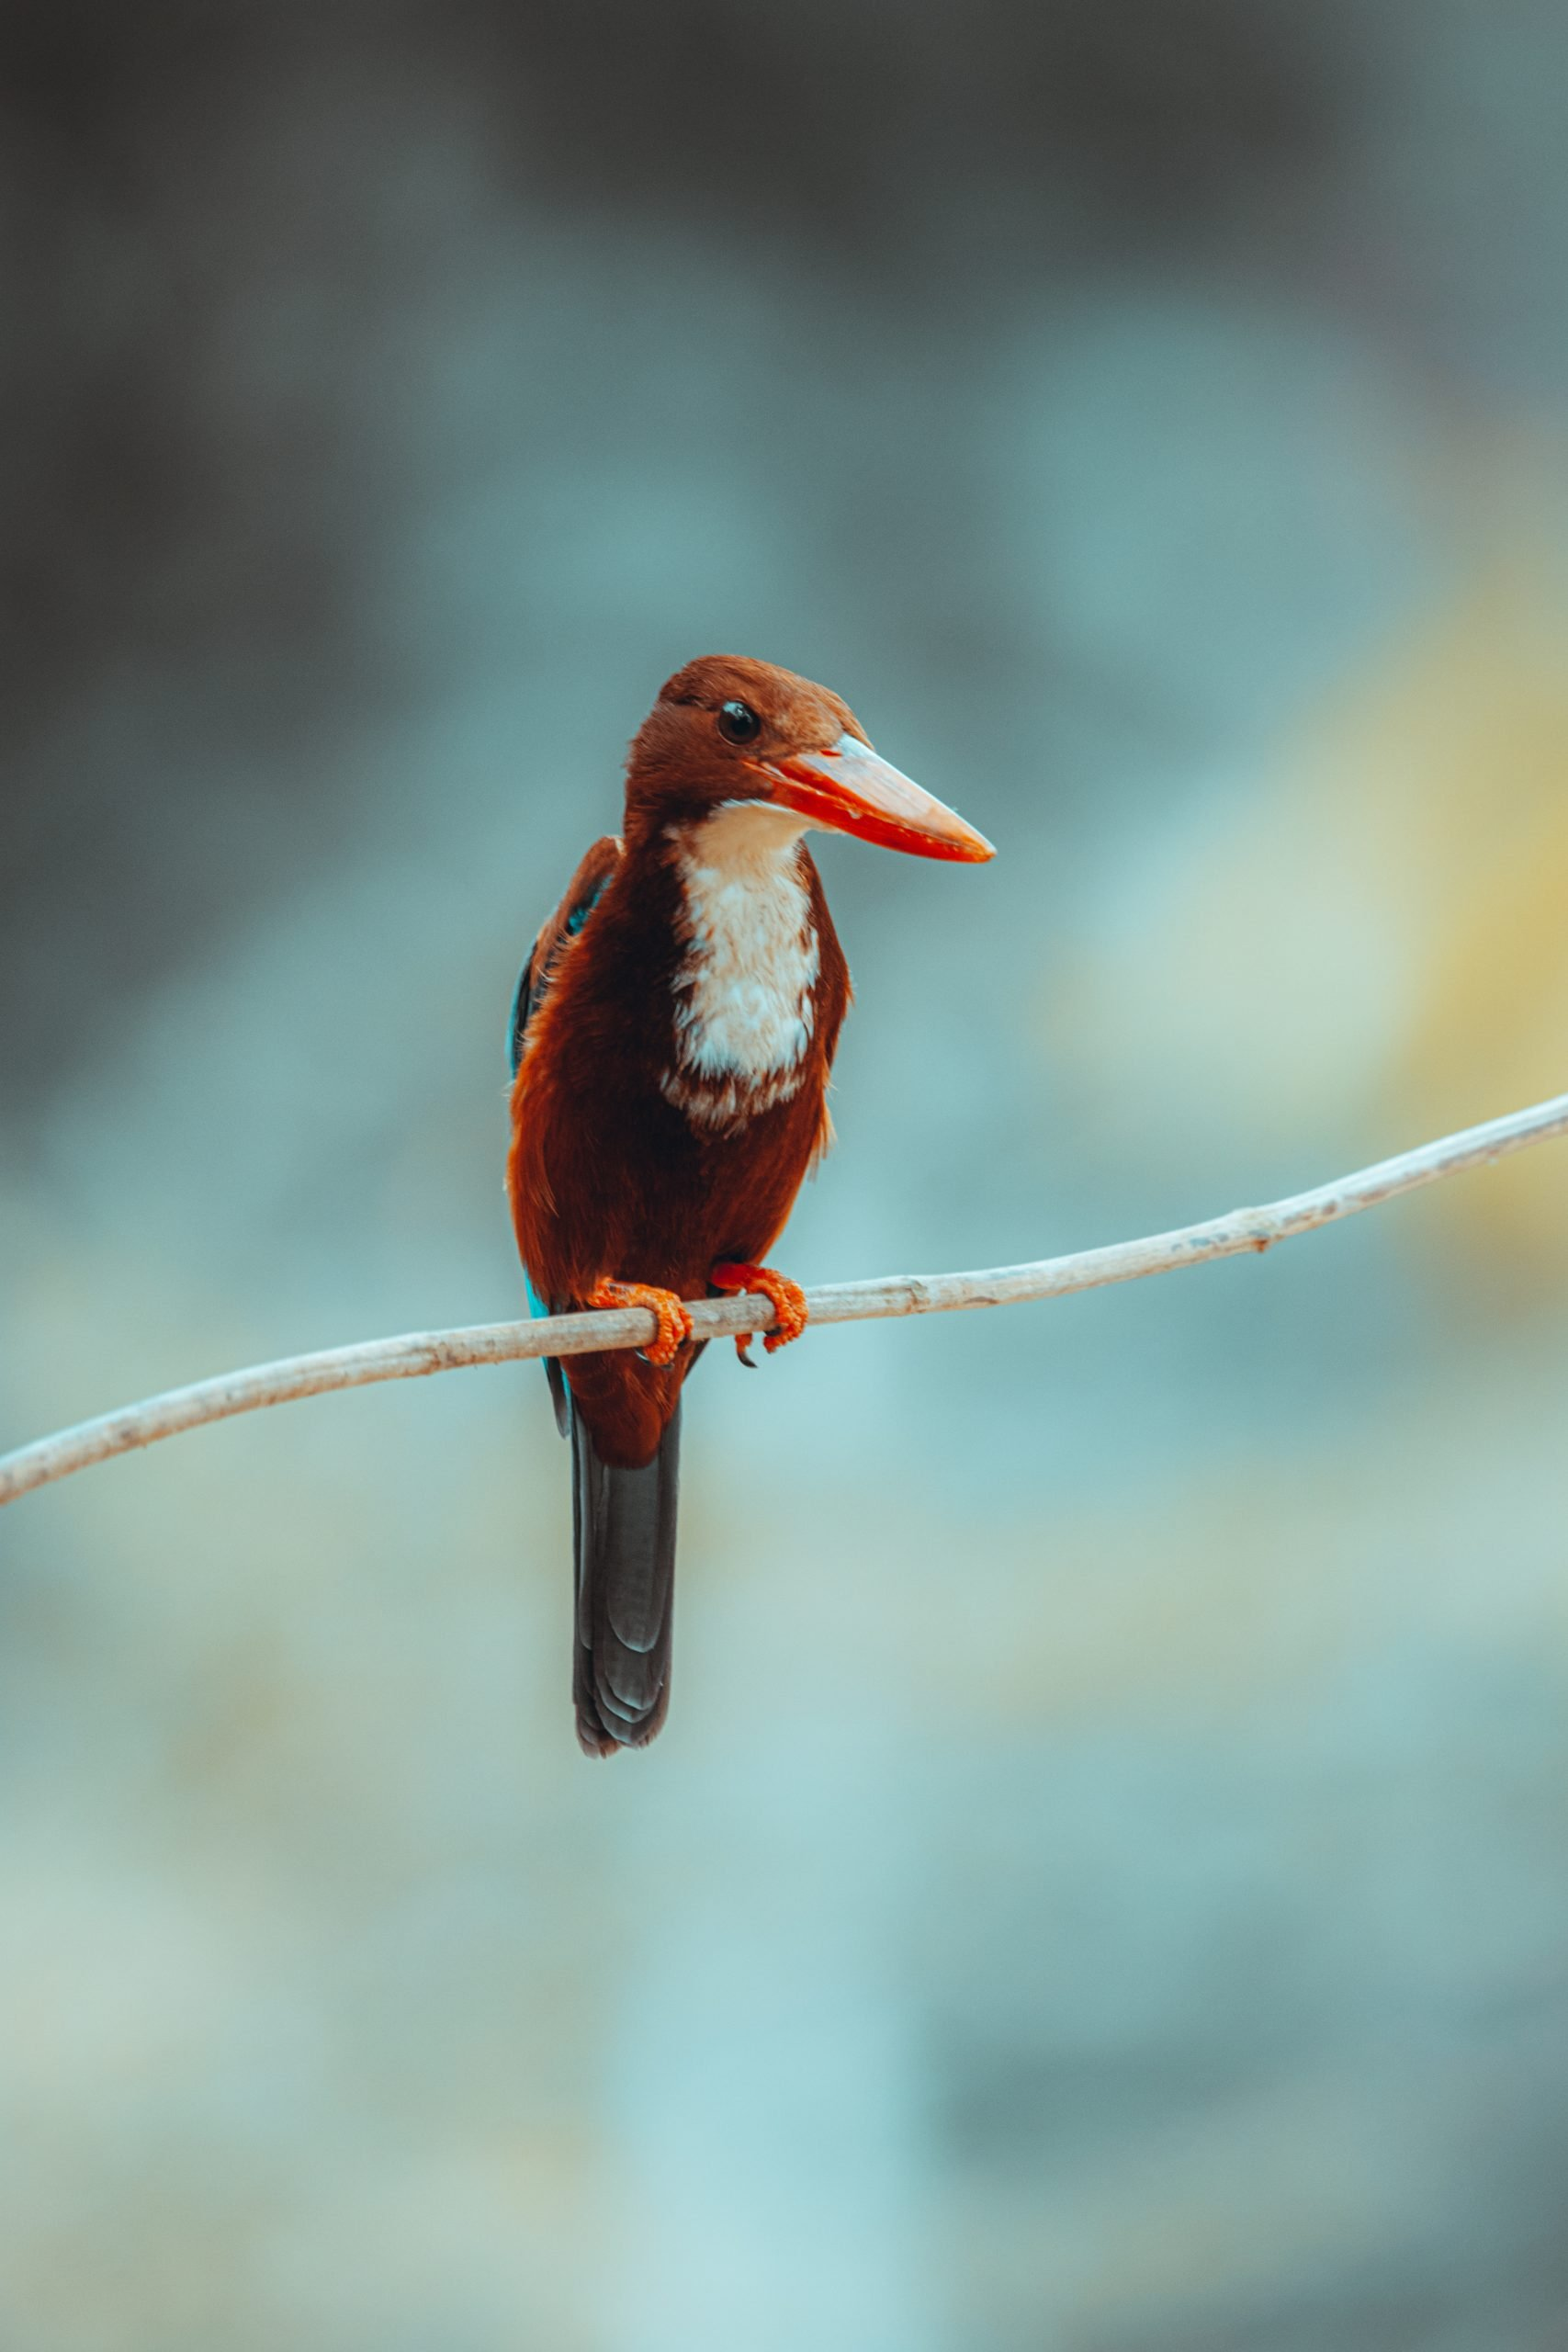 Kingfisher On a Tree